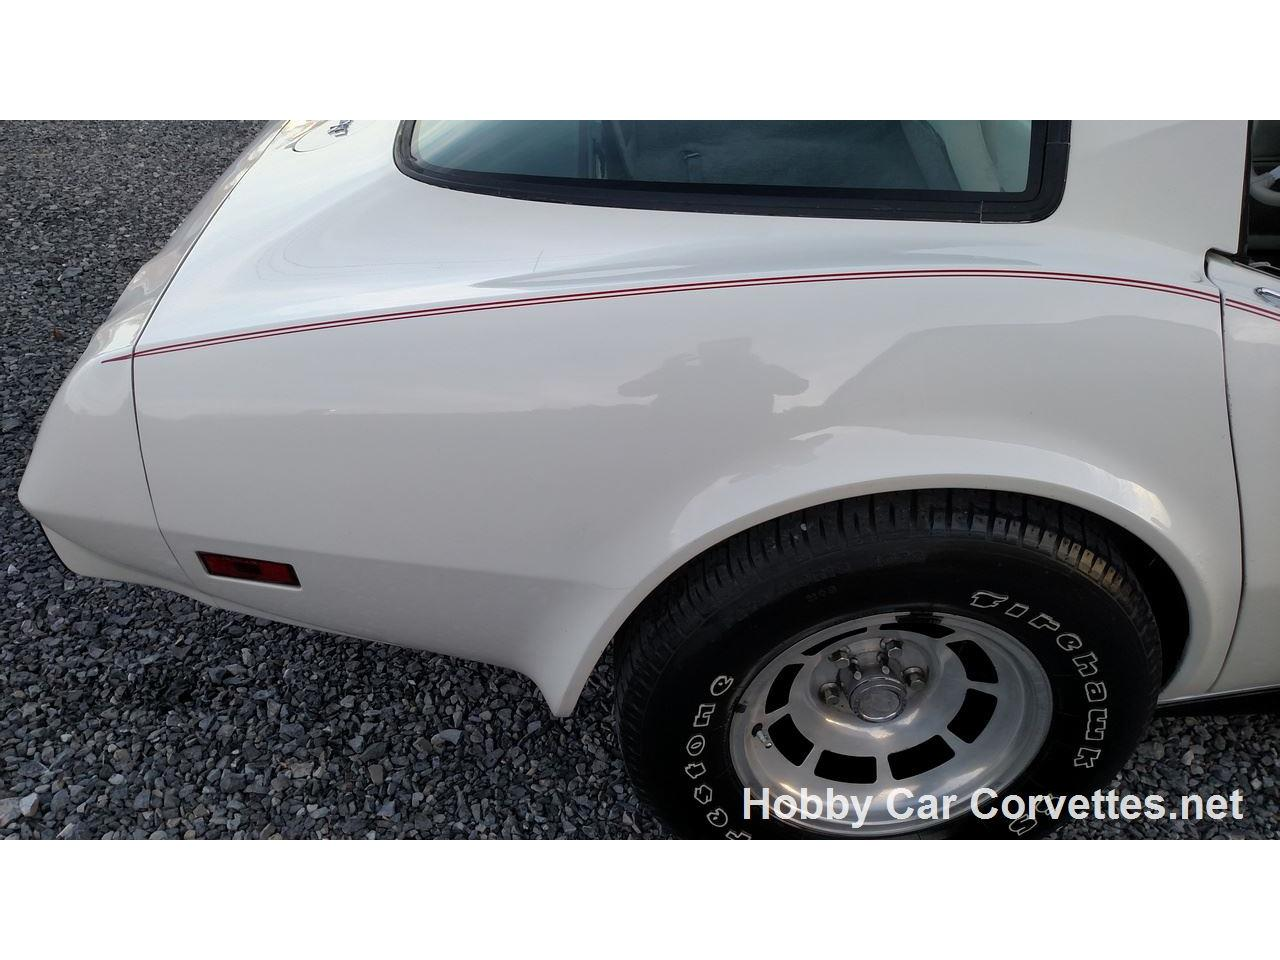 Large Picture of '79 Chevrolet Corvette located in Martinsburg Pennsylvania - $14,999.00 Offered by Hobby Car Corvettes - KMMI